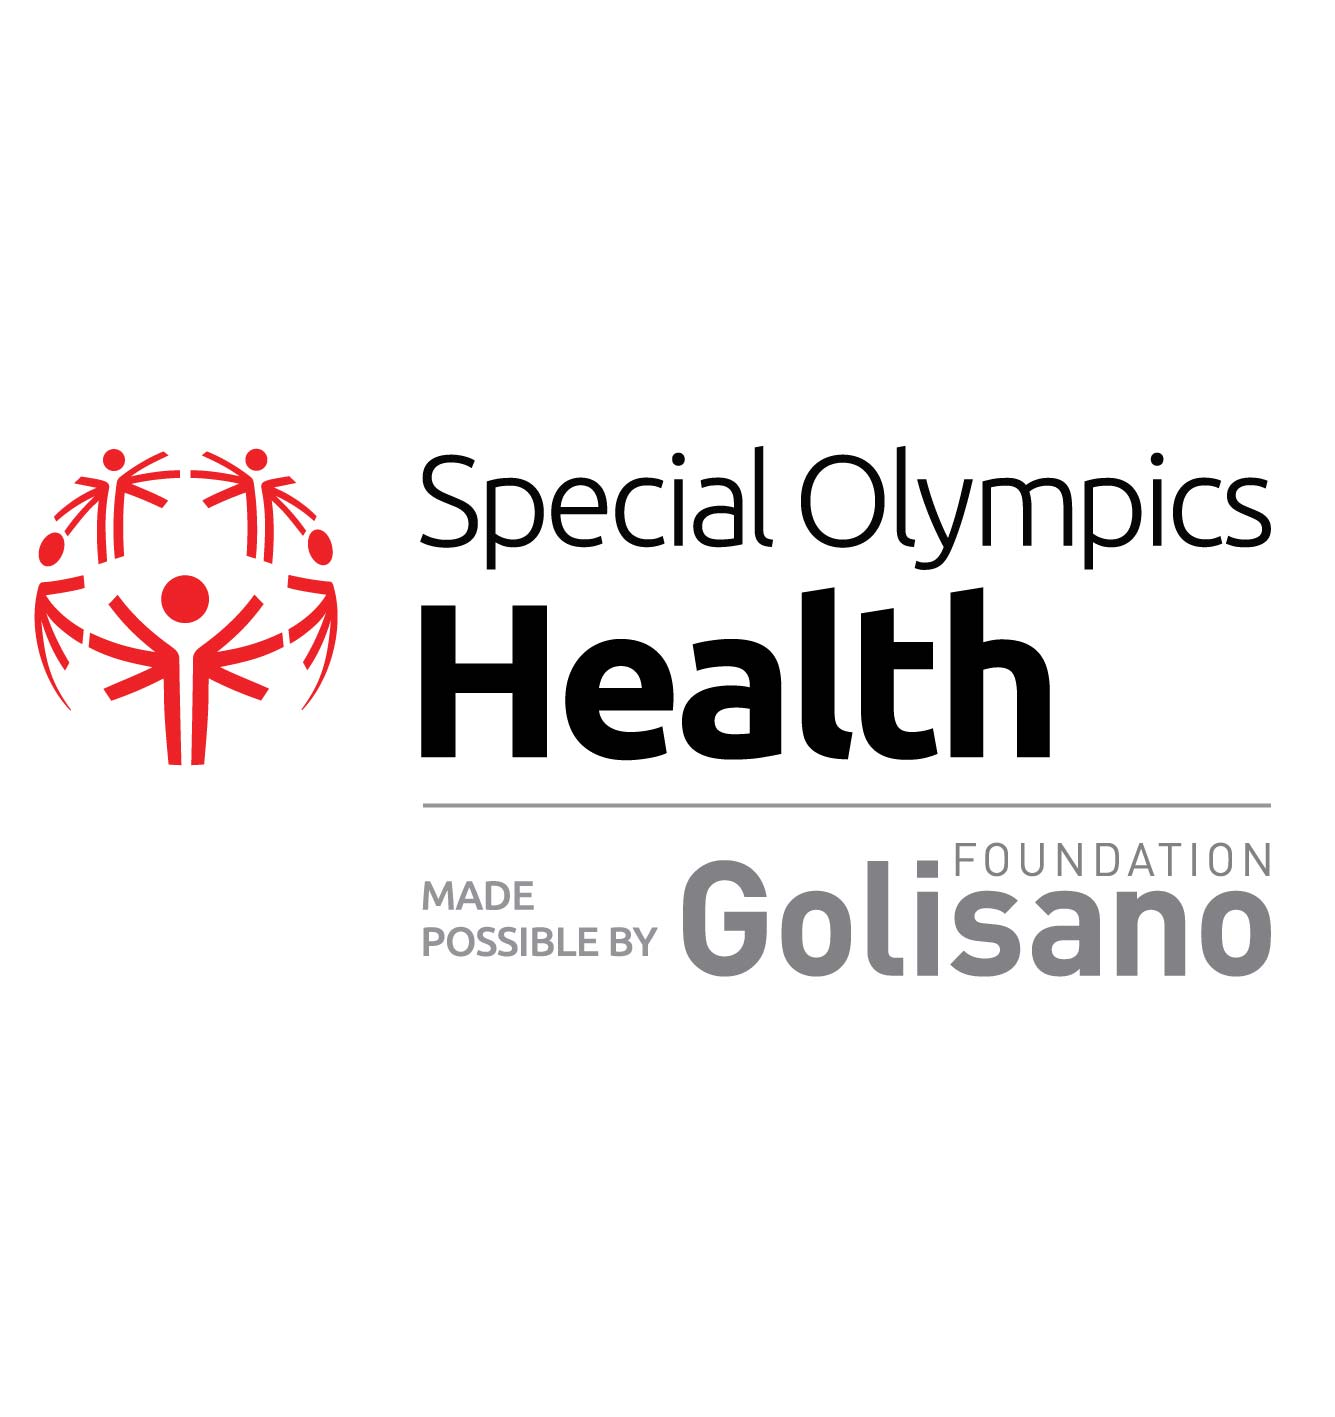 """Lessons learned through Healthy Communities can be applied in other areas on innovative collaborations to achieve systems change for under-served populations. - The Golisano Foundation made a """"big bet"""" of $37 million to increase access to healthcare for people with intellectual and developmental disabilities (IDD) by partnering with Special Olympics and launching Healthy Communities. Now active in 57 communities around the world, the initiative is impacting change on a large scale through innovative partnerships and advocacy."""